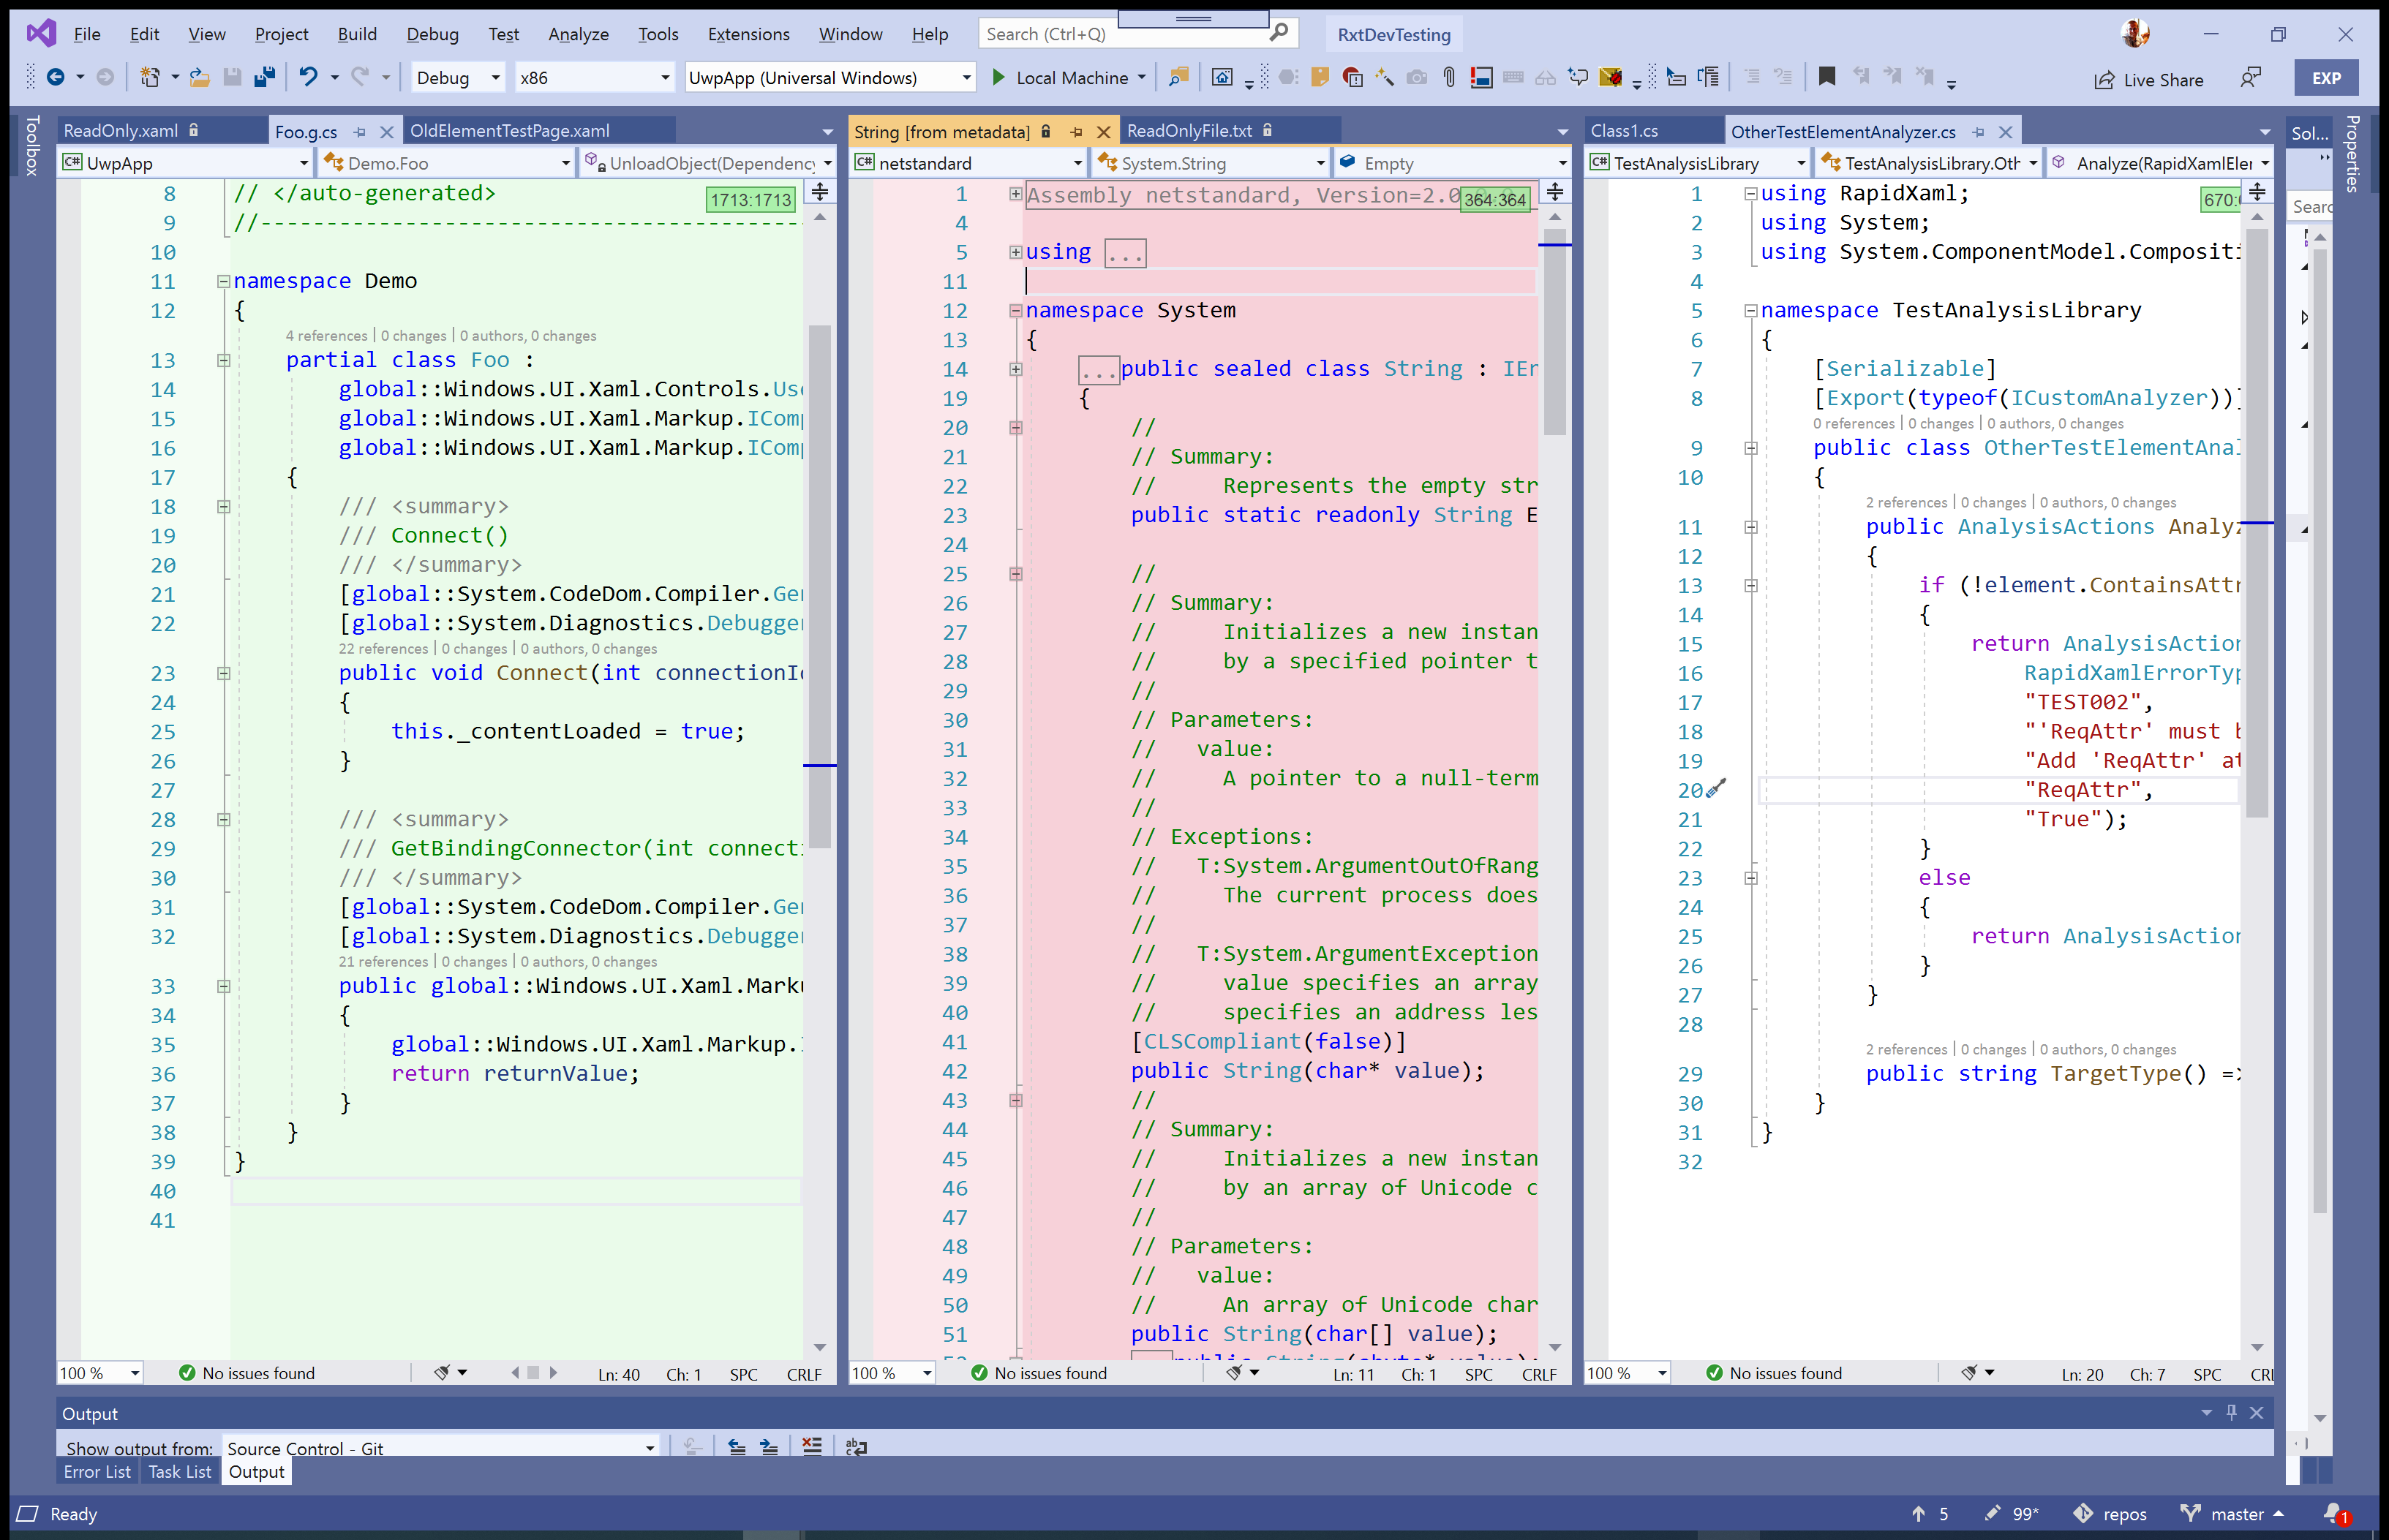 Example of the backgrounds set on different editor windows